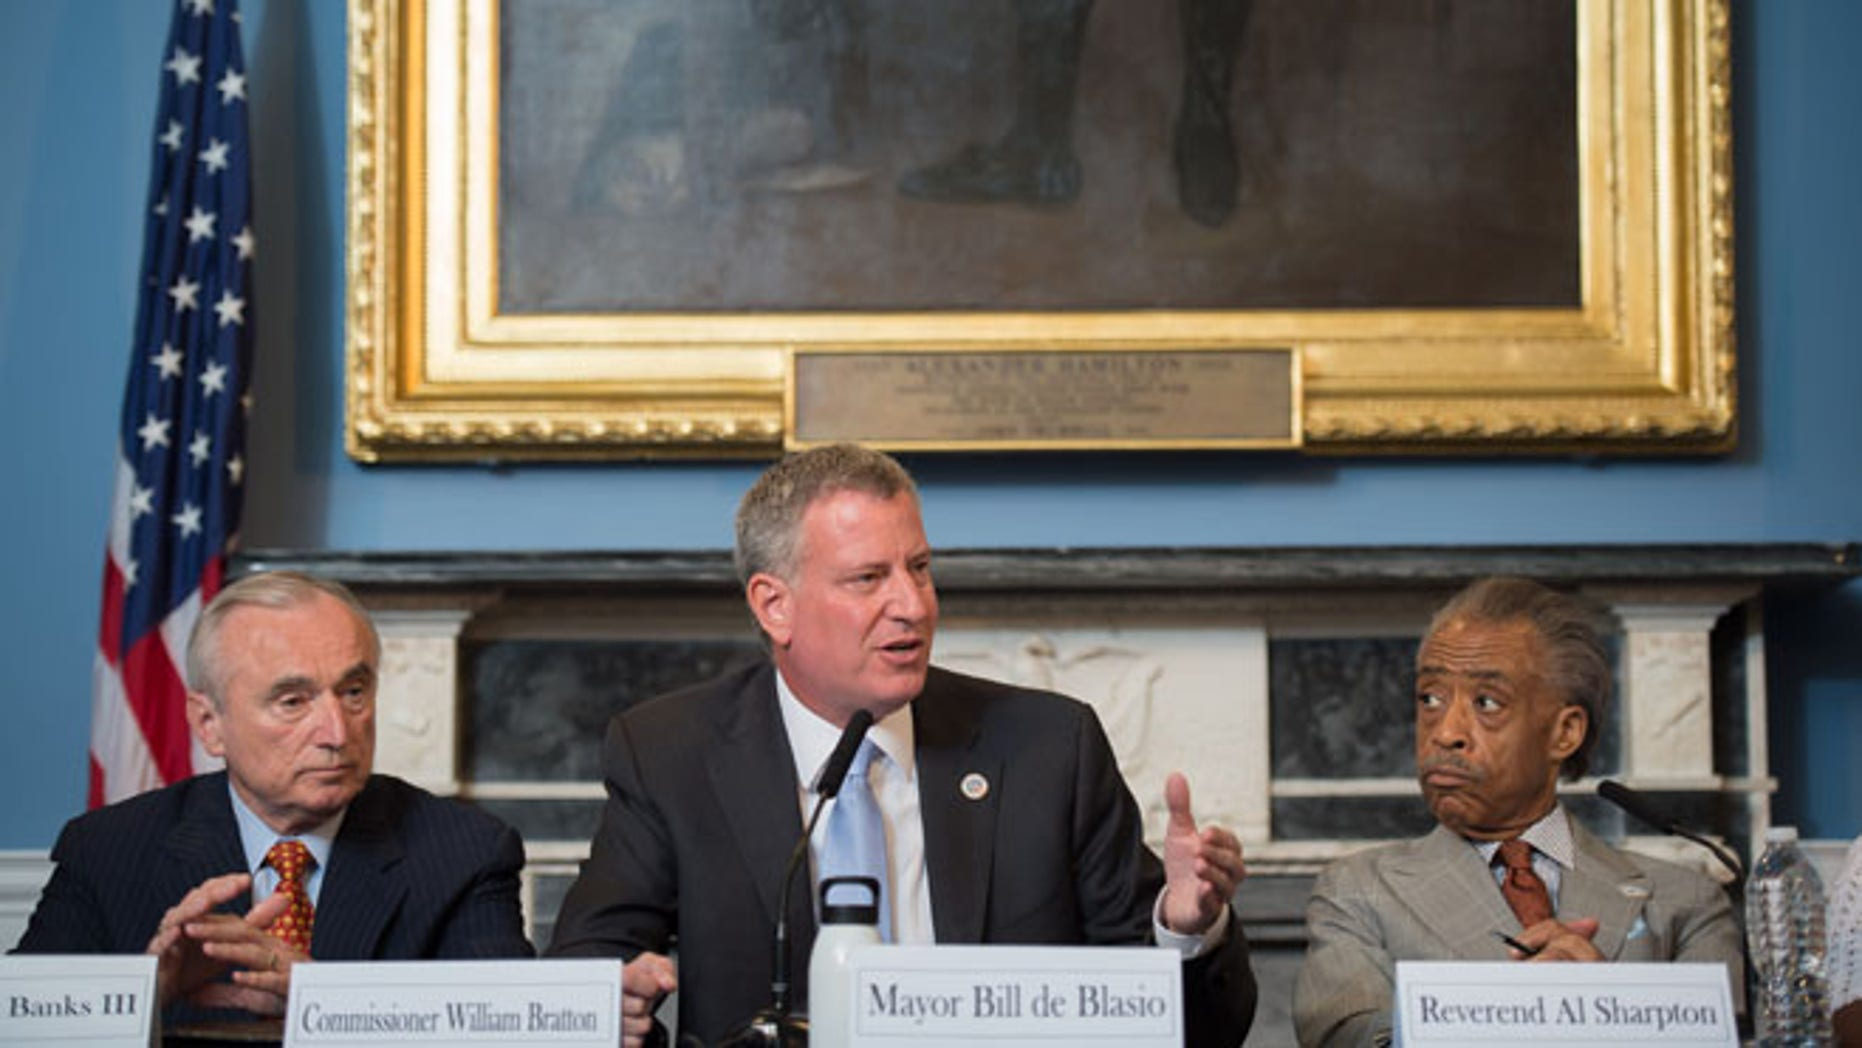 July 31, 2014: New York Mayor Bill de Blasio, center, is seated between New York City Police Commissioner William Bratton, left, and the Rev. Al Sharpton, during a roundtable discussion convened to ease tensions over the July 17 police-involved death of Eric Garner.